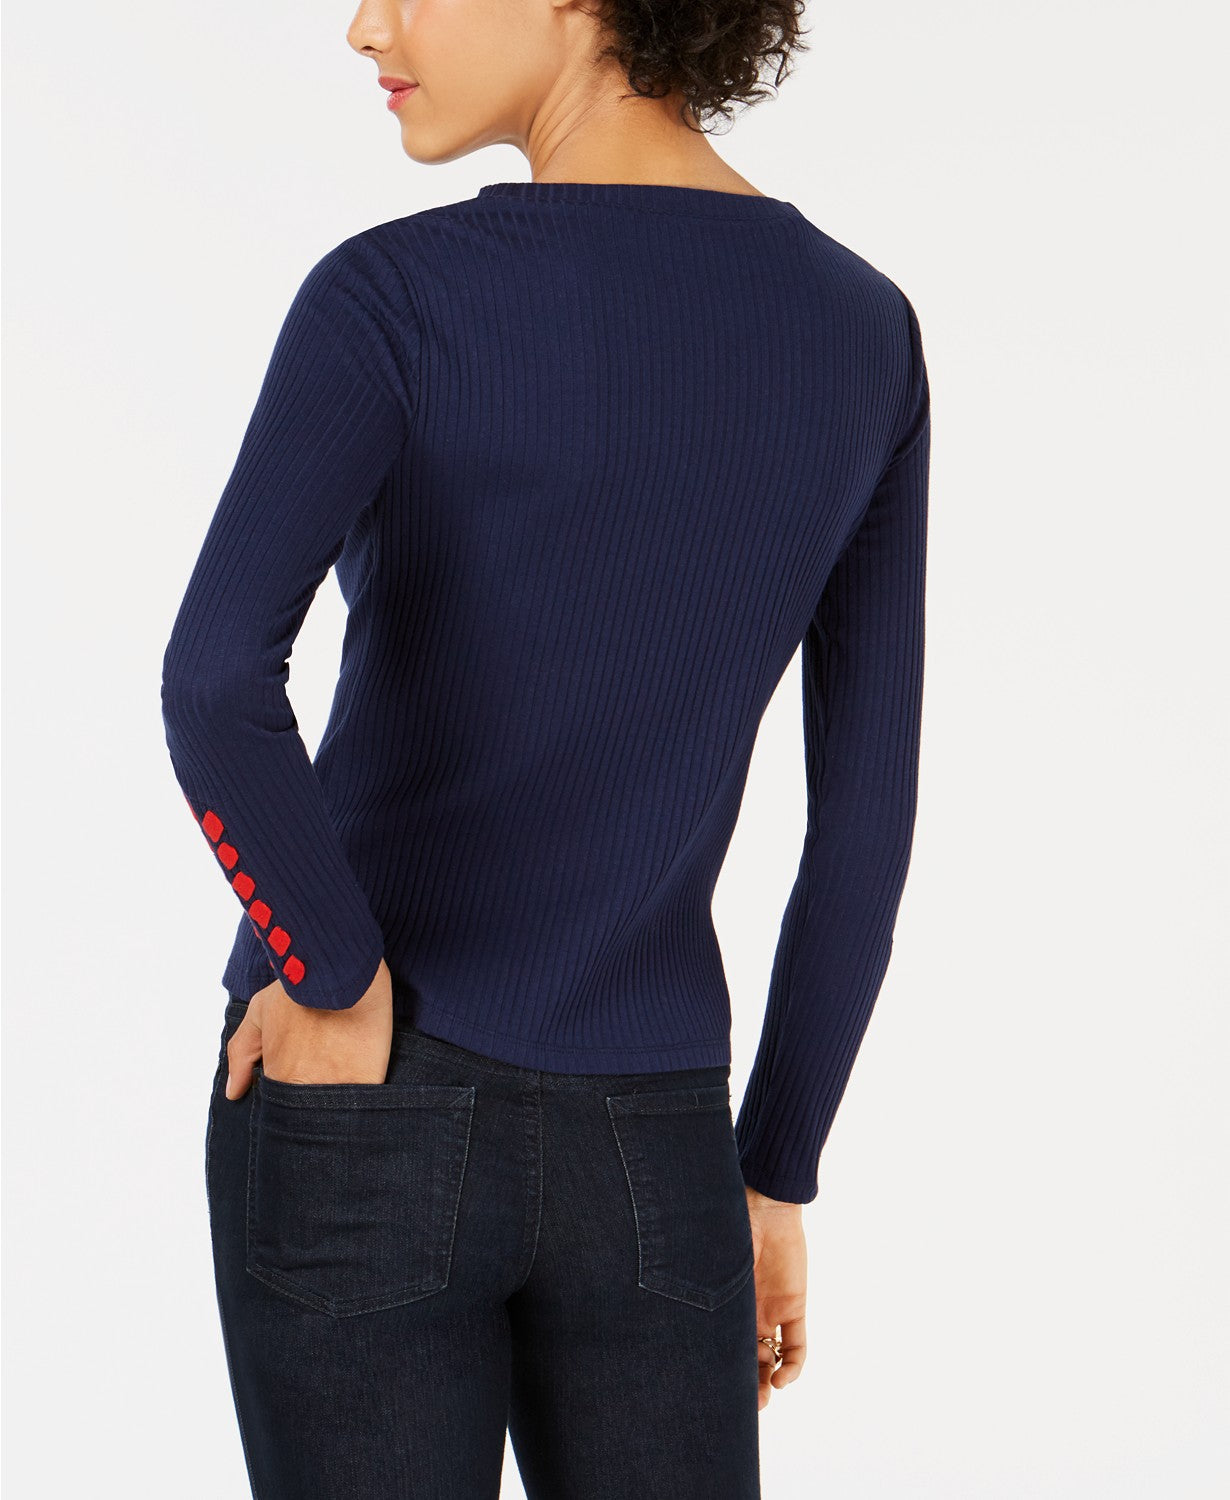 Maison Jules Ribbed Laced-Sleeve Top Blu Notte